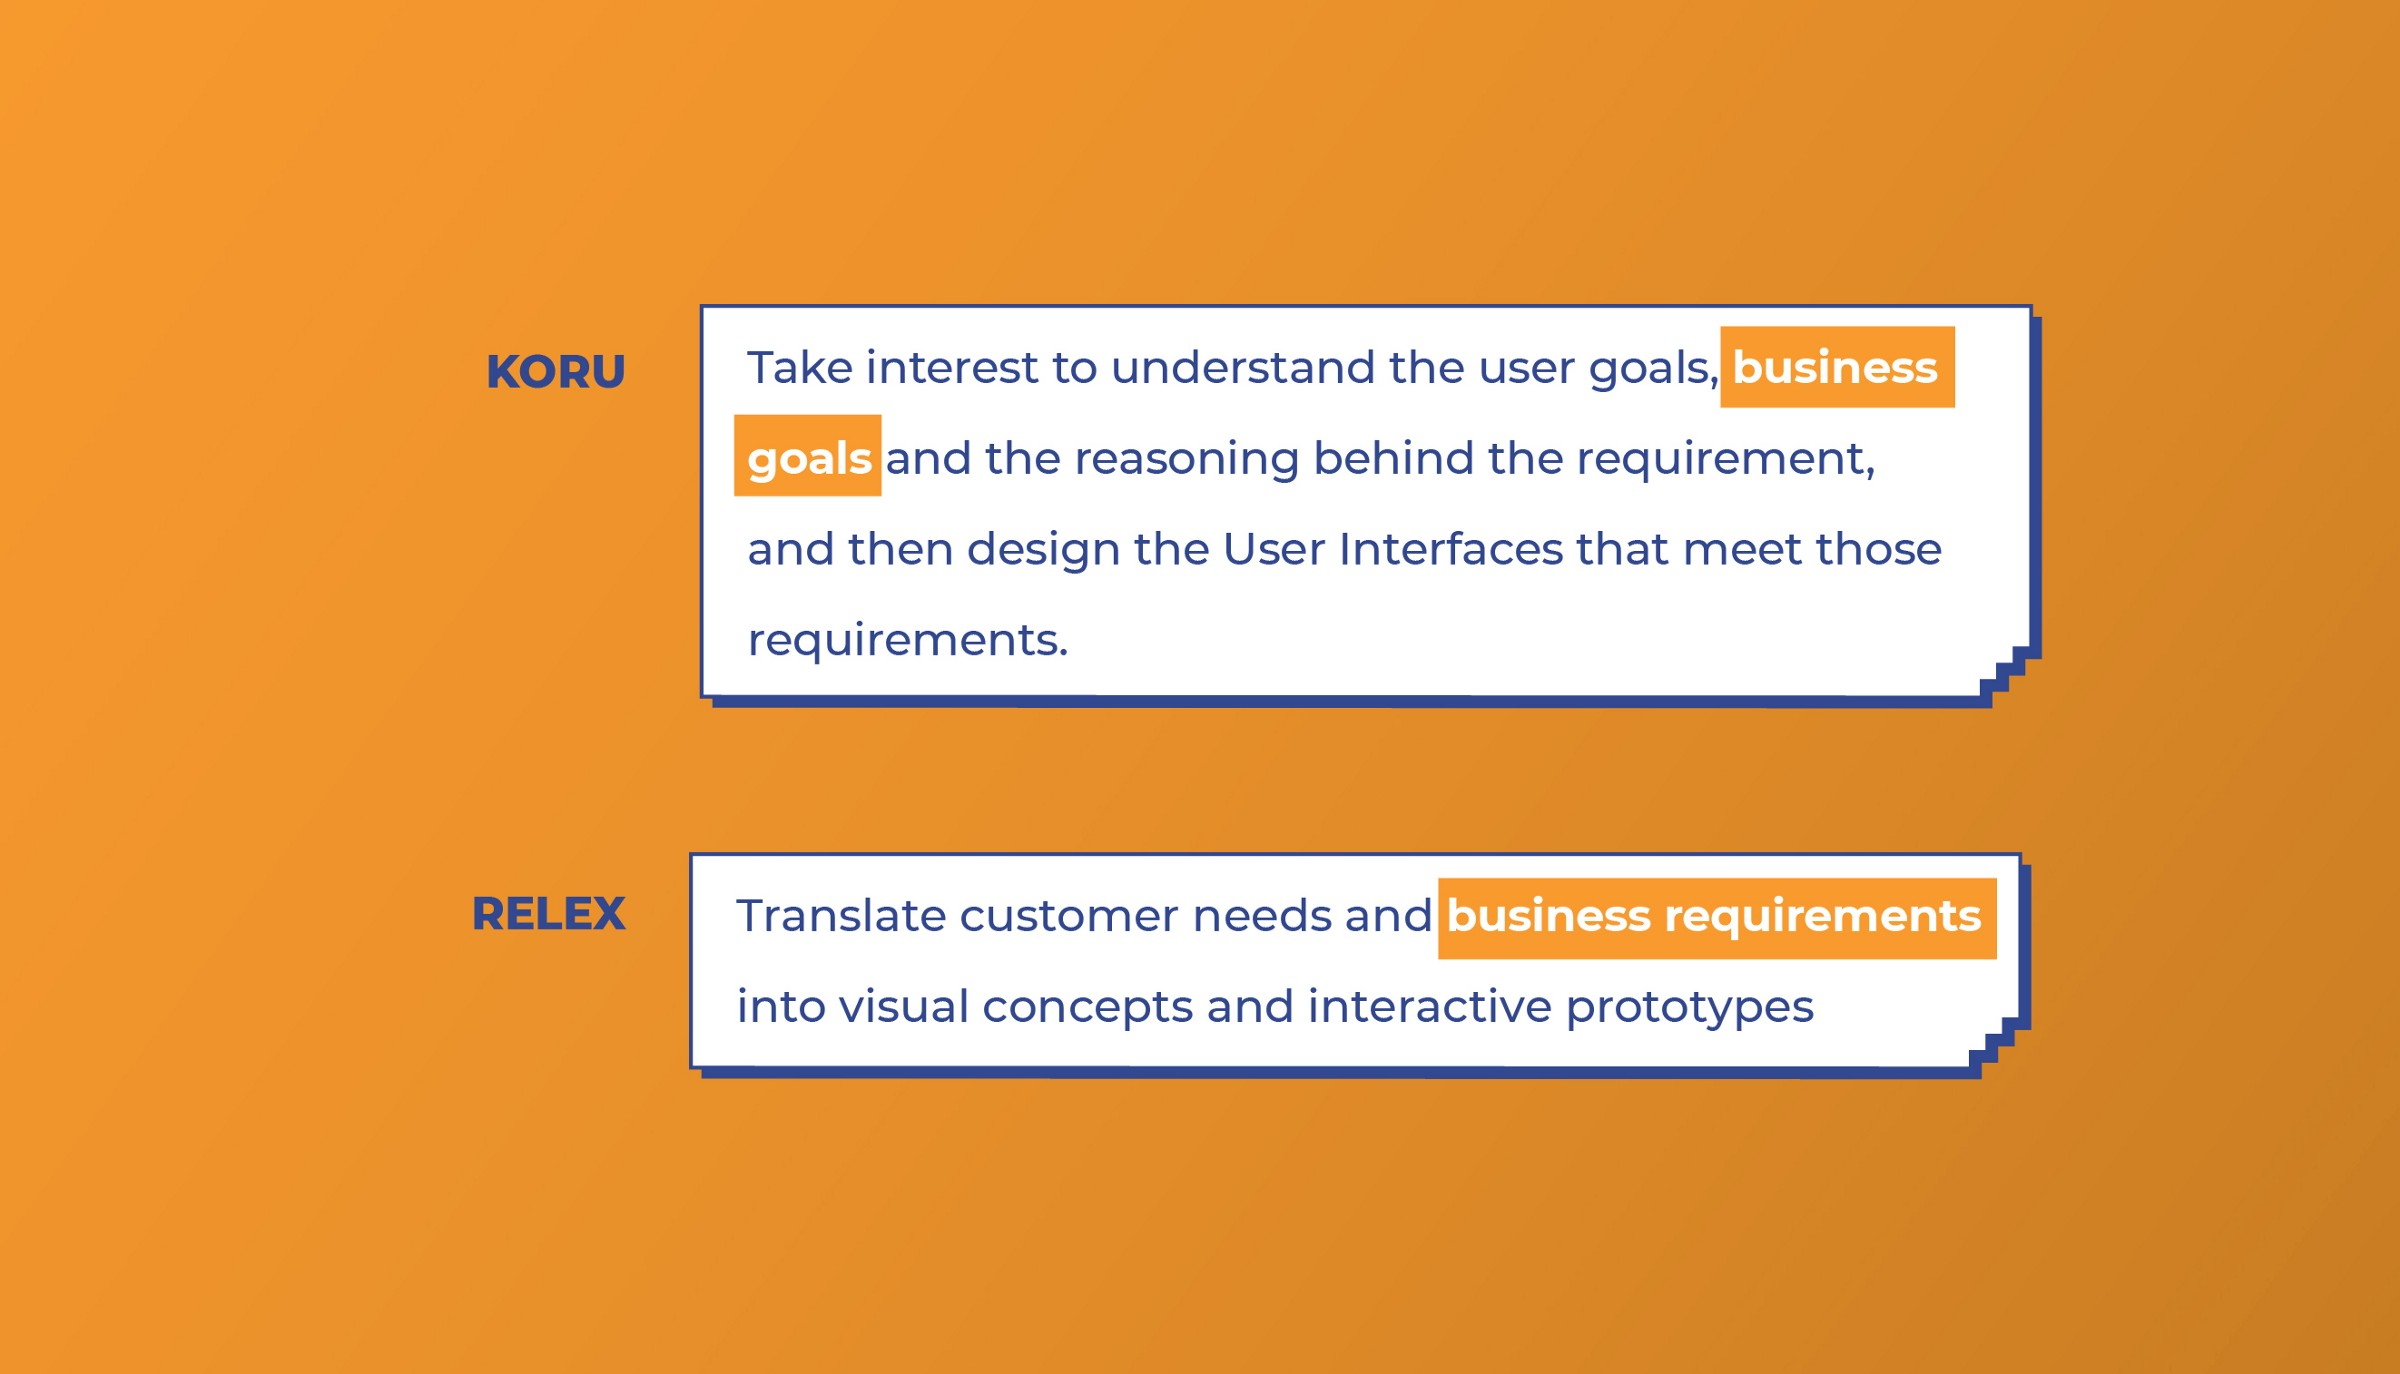 Koru and Relex look for Business skills from UI designers